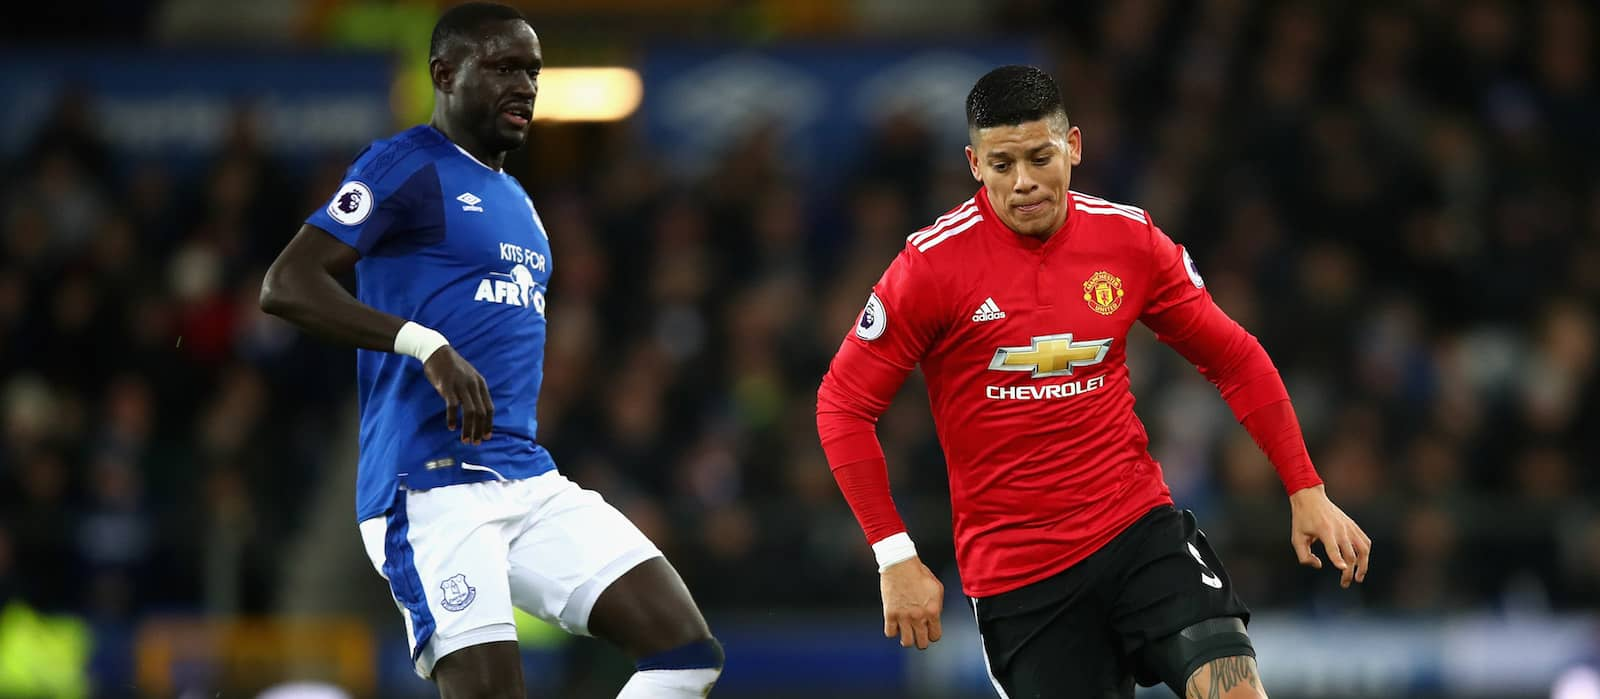 Marcos Rojo 'angry' after deadline day move to Everton fell through – report